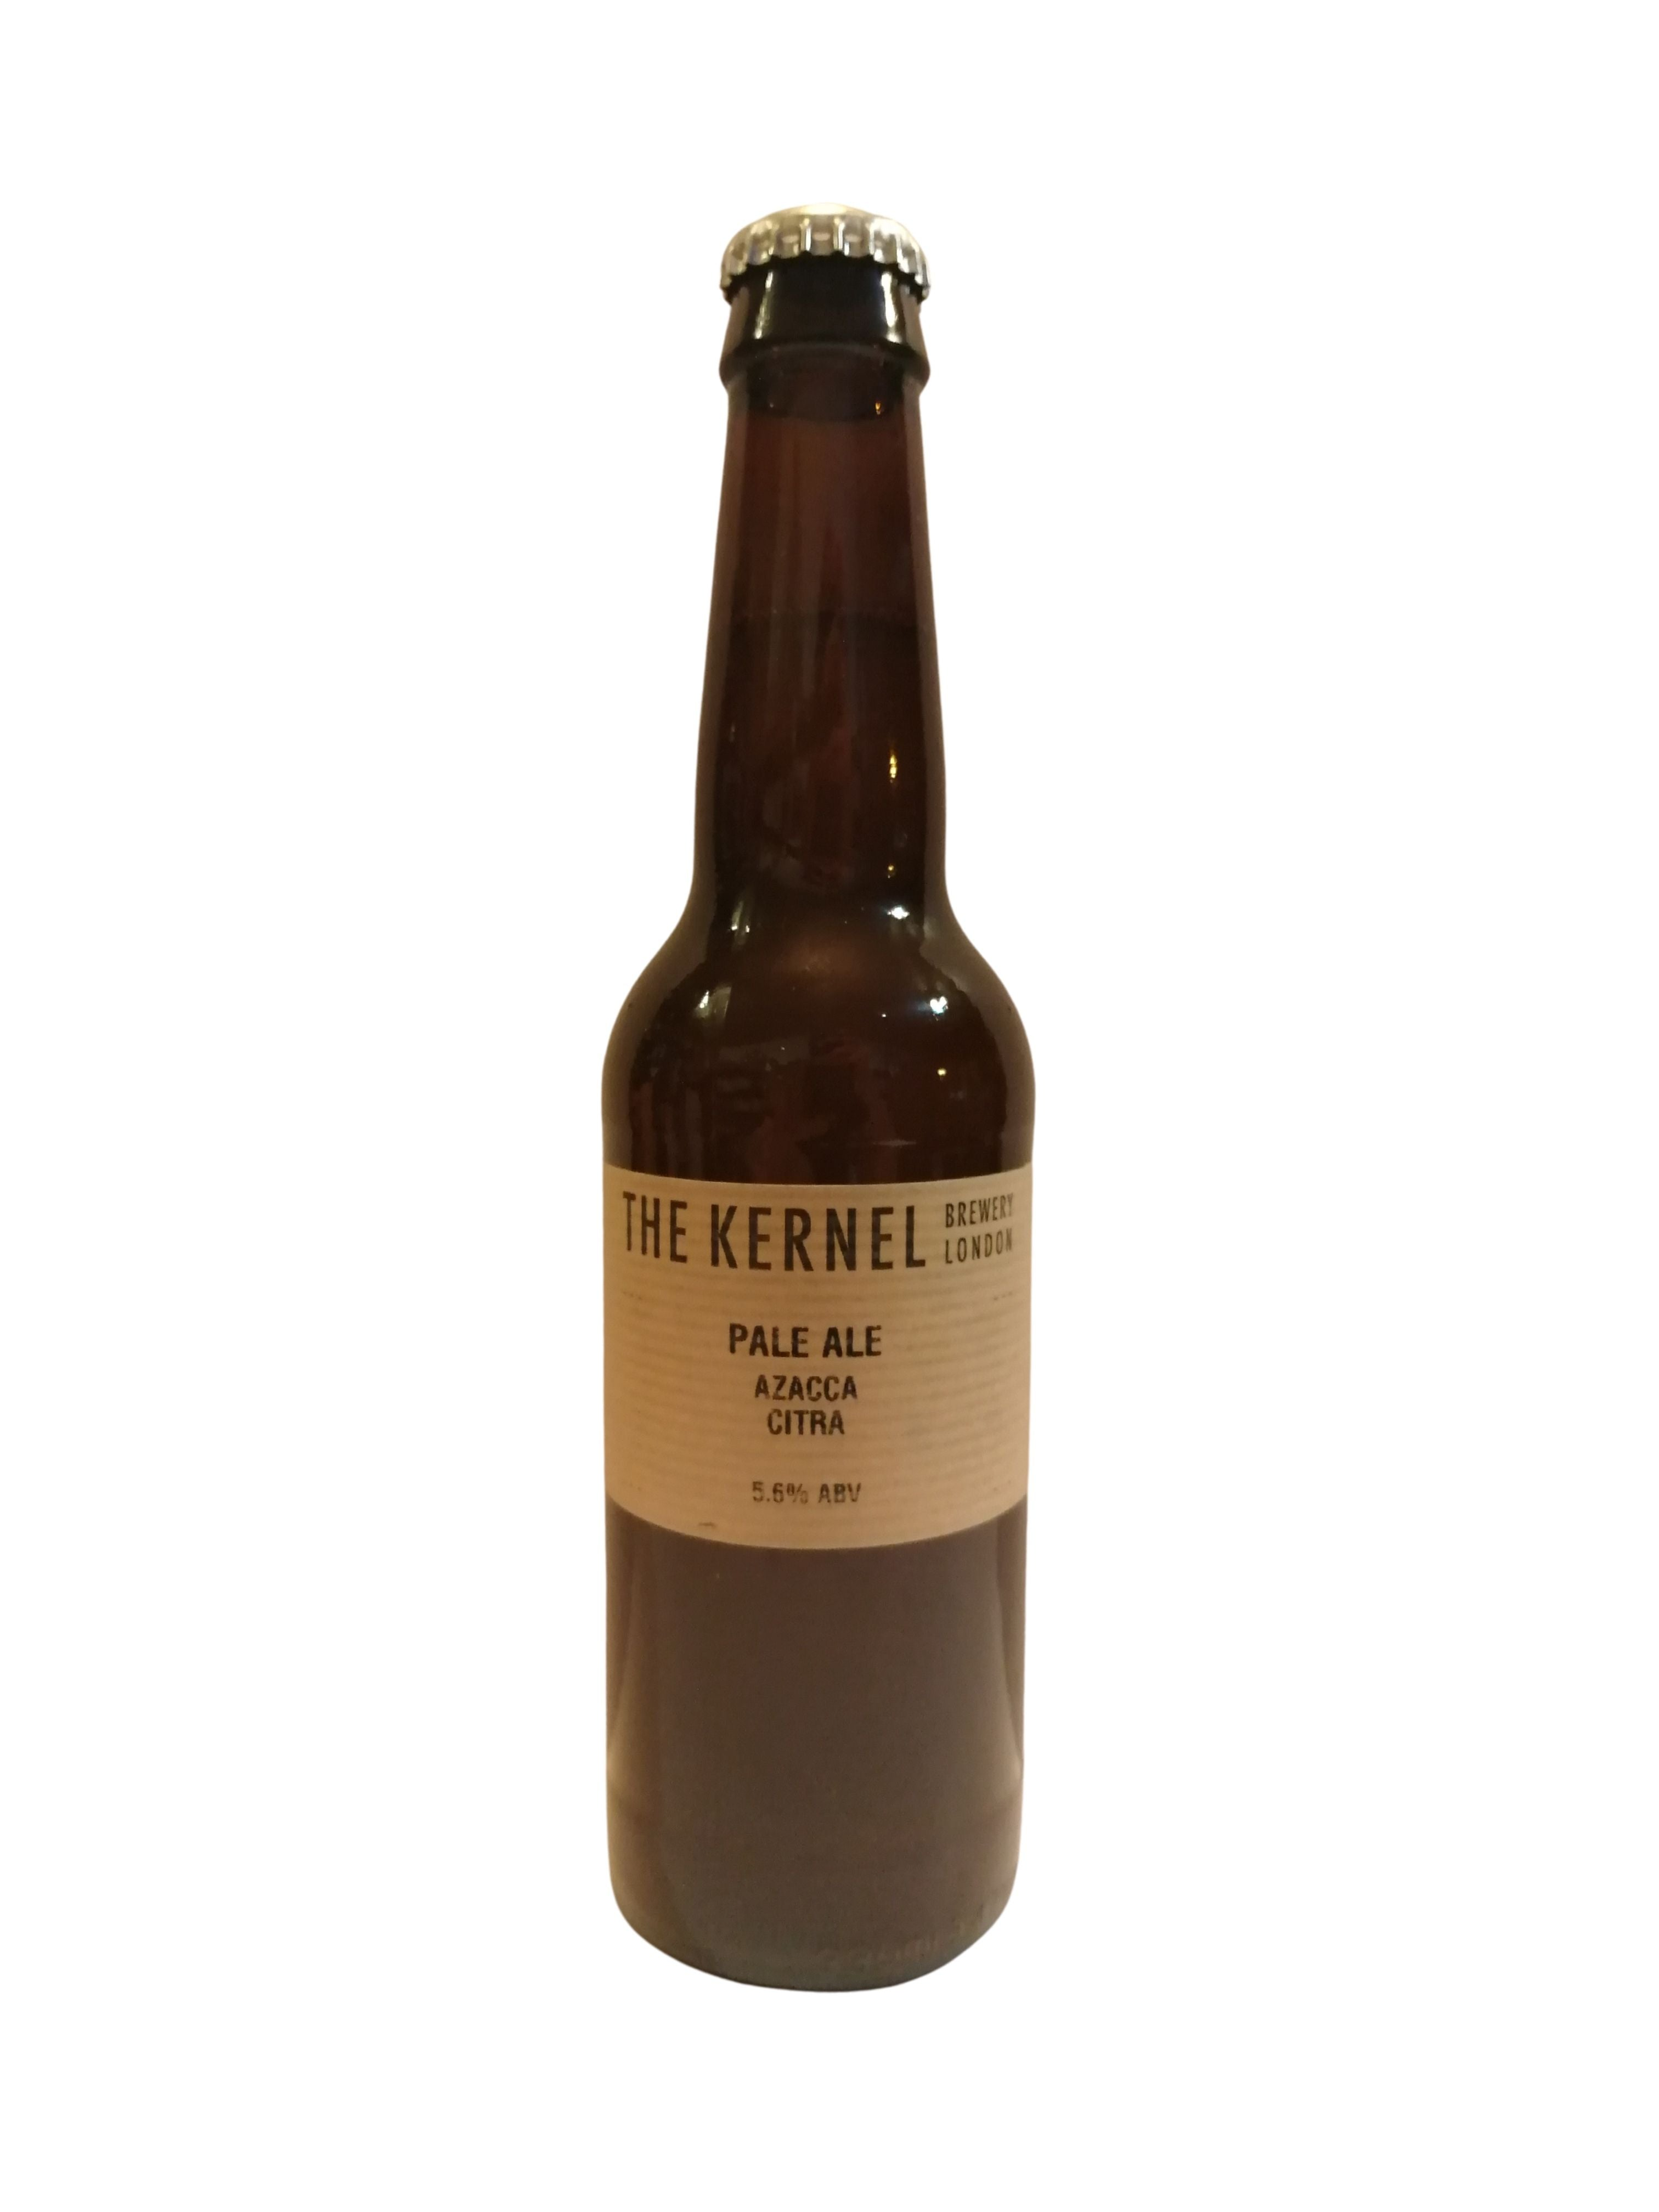 The Kernel - Pale Ale Azacca Citra - Pale Ale - 5.6% (Brand New)